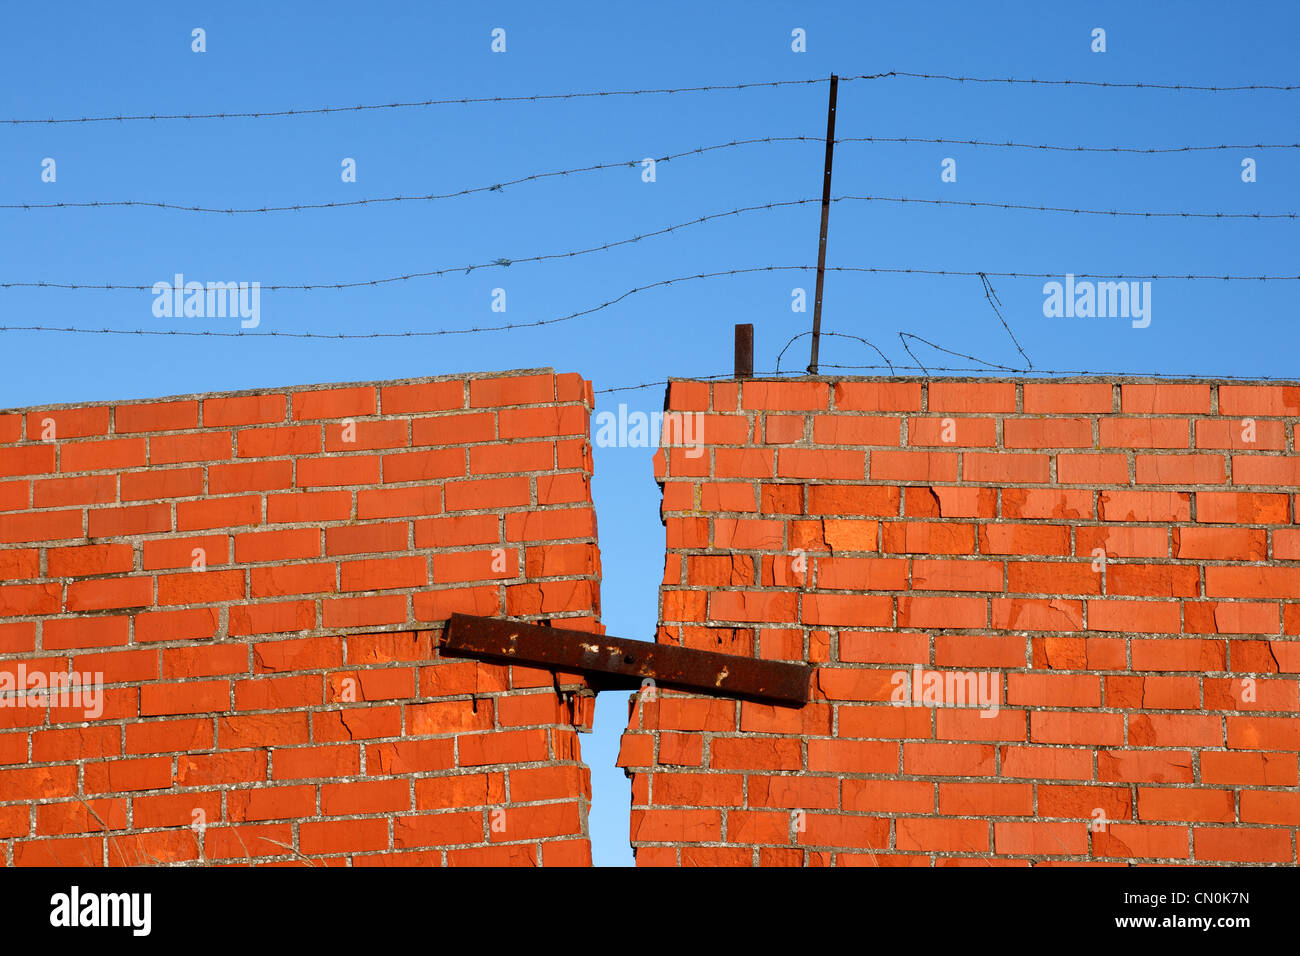 Red Brick broken Wall with barbed wire against blue sky - Stock Image